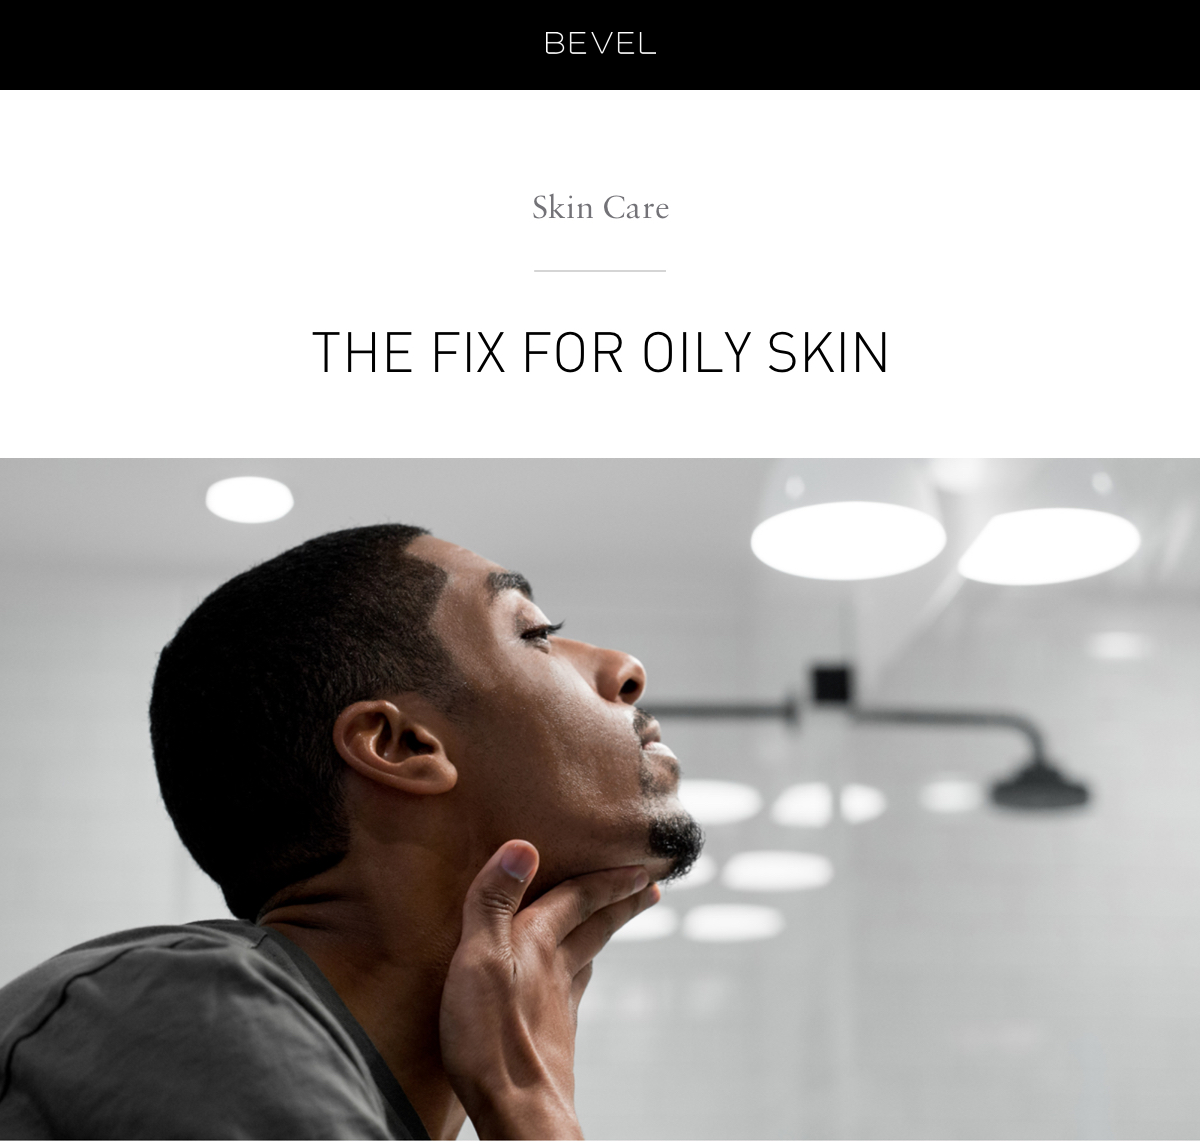 Skin Care: The Fix For Oily Skin